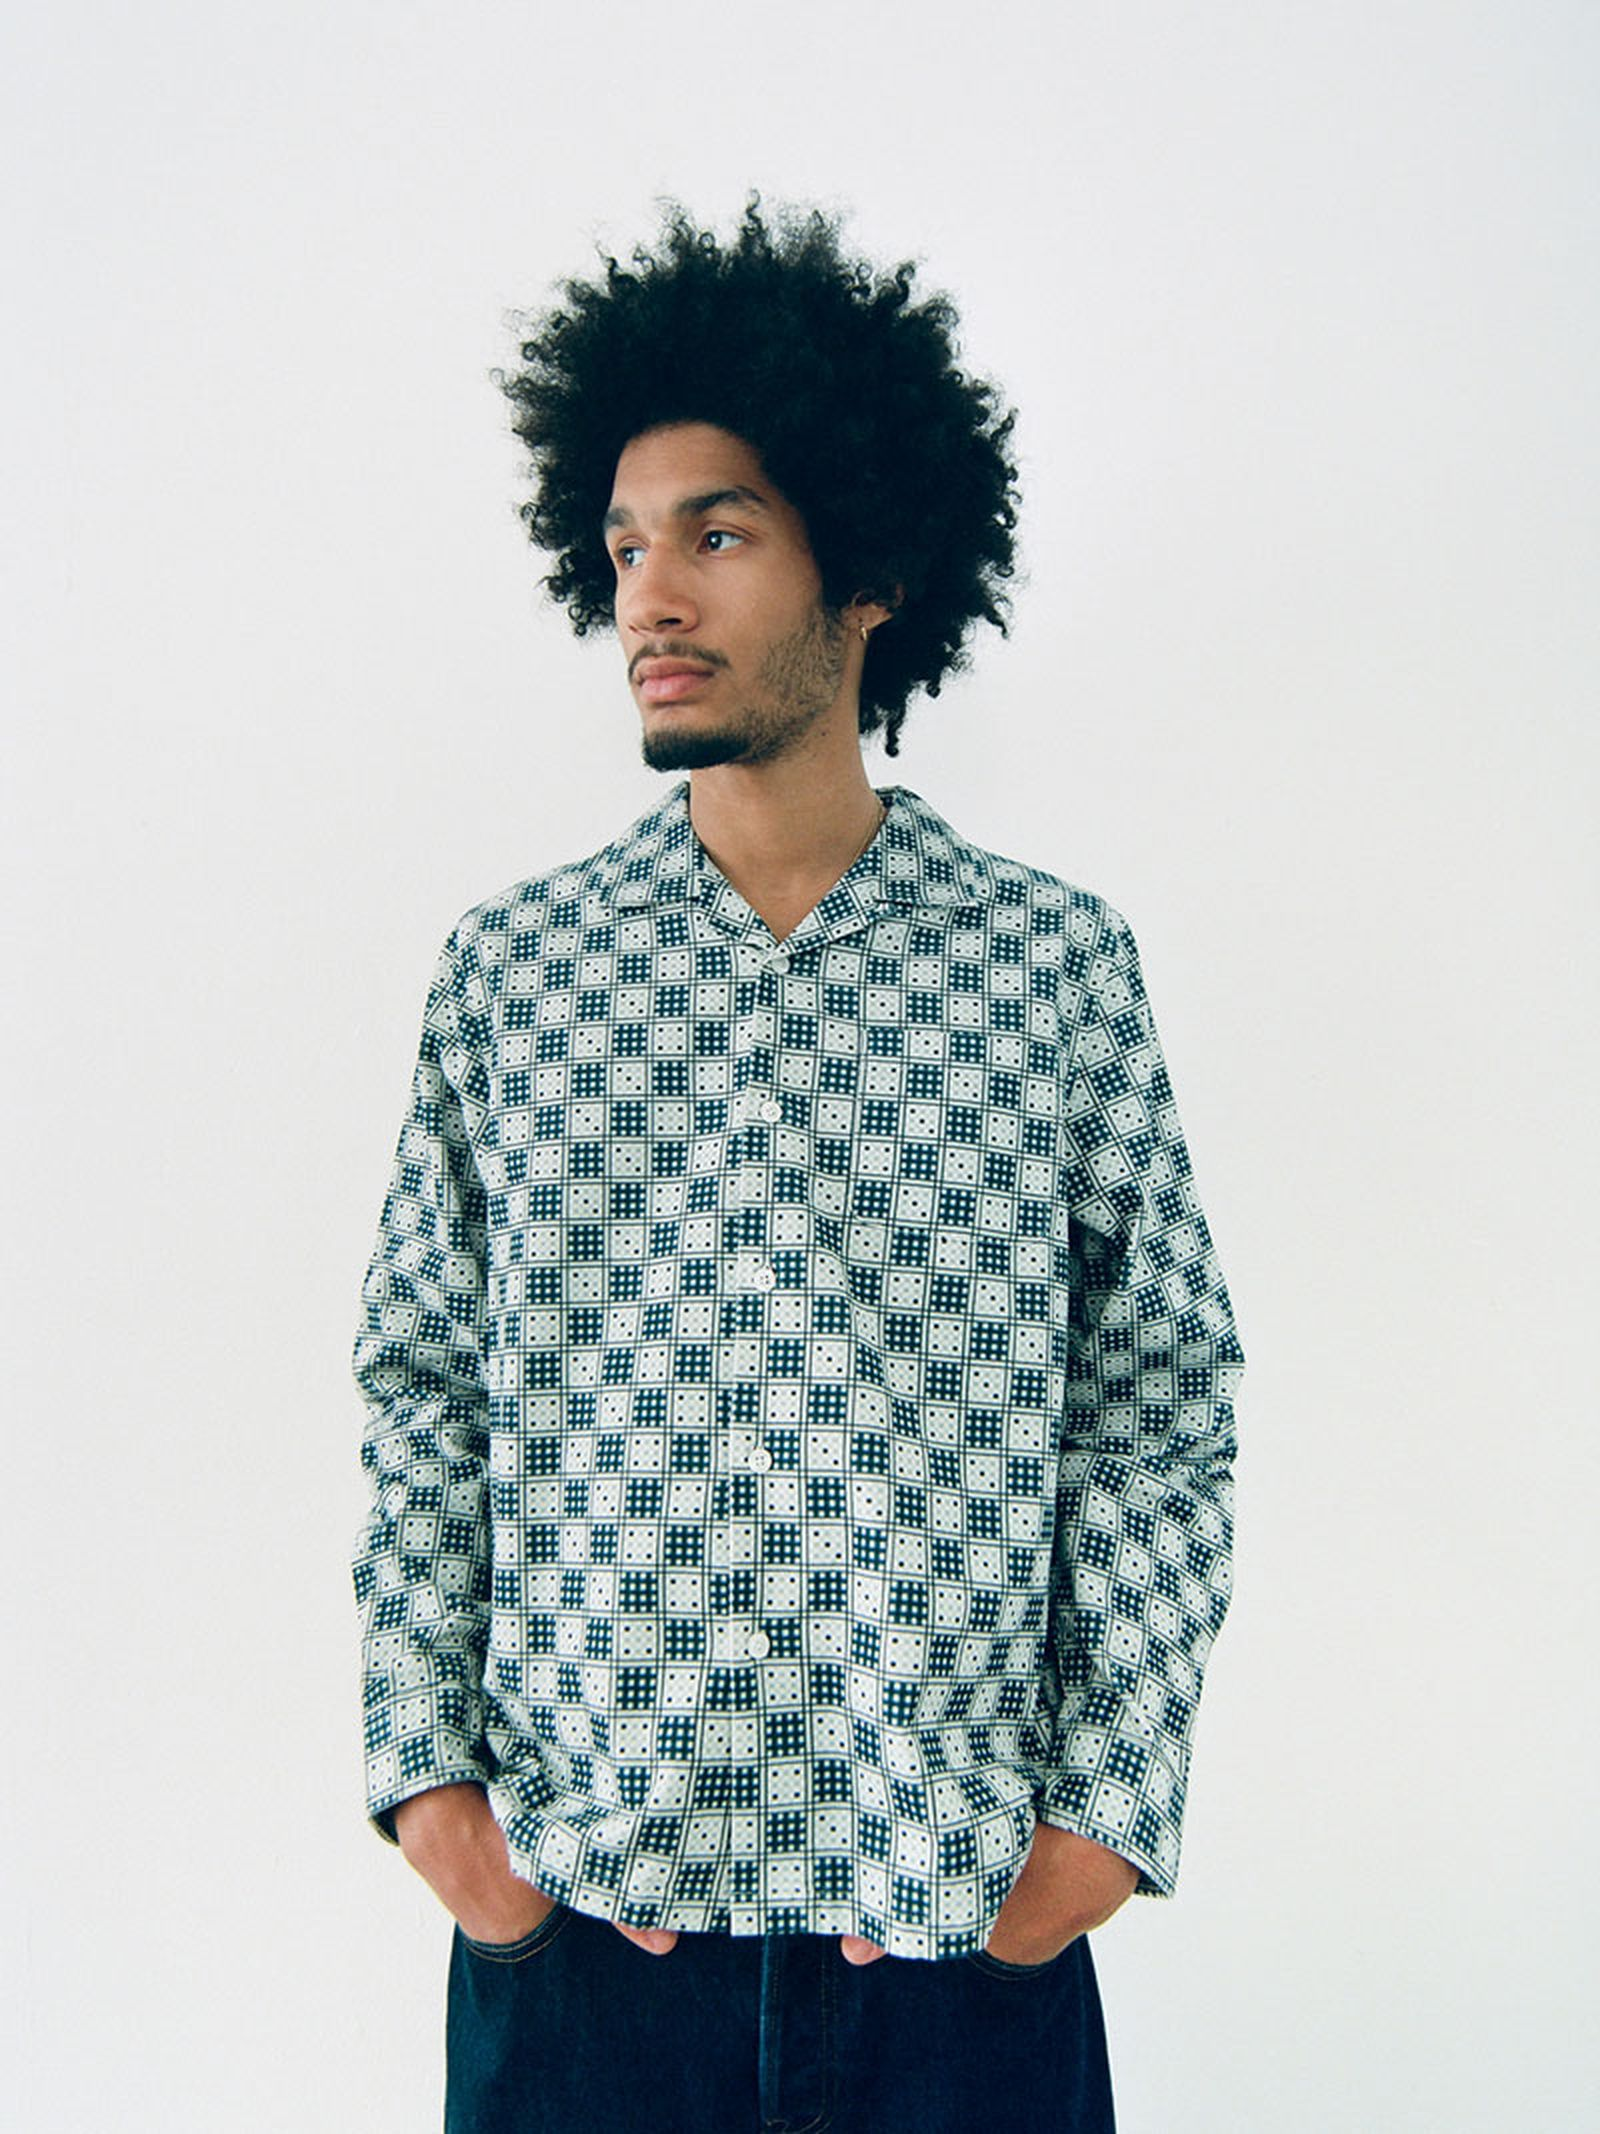 Stussy SP20 Lookbook - D1 Mens - 10